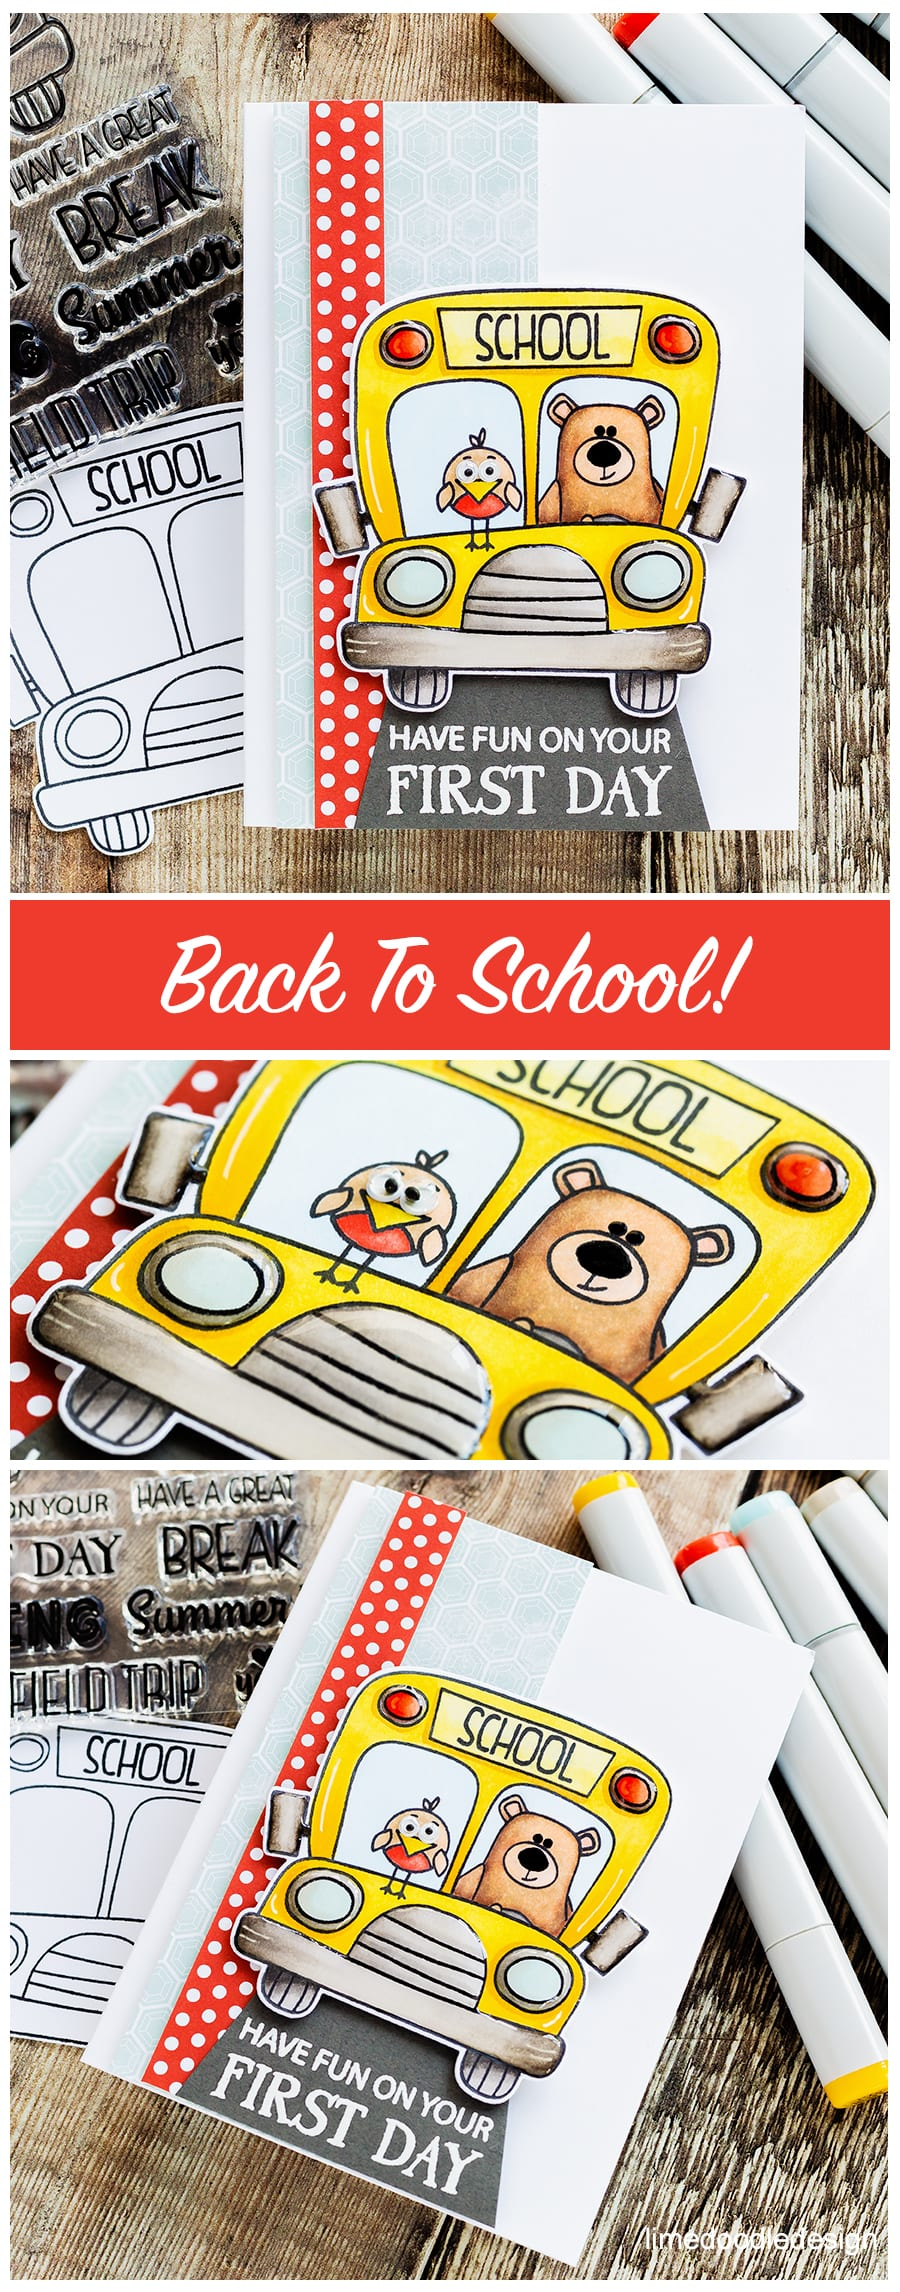 It's back to school time! Handmade card by Debby Hughes using the new School Bus Messages set from Simon Says Stamp. Find out more here: https://limedoodledesign.com/2018/07/back-to-school-time/ #school #backtoschool #schoolbus